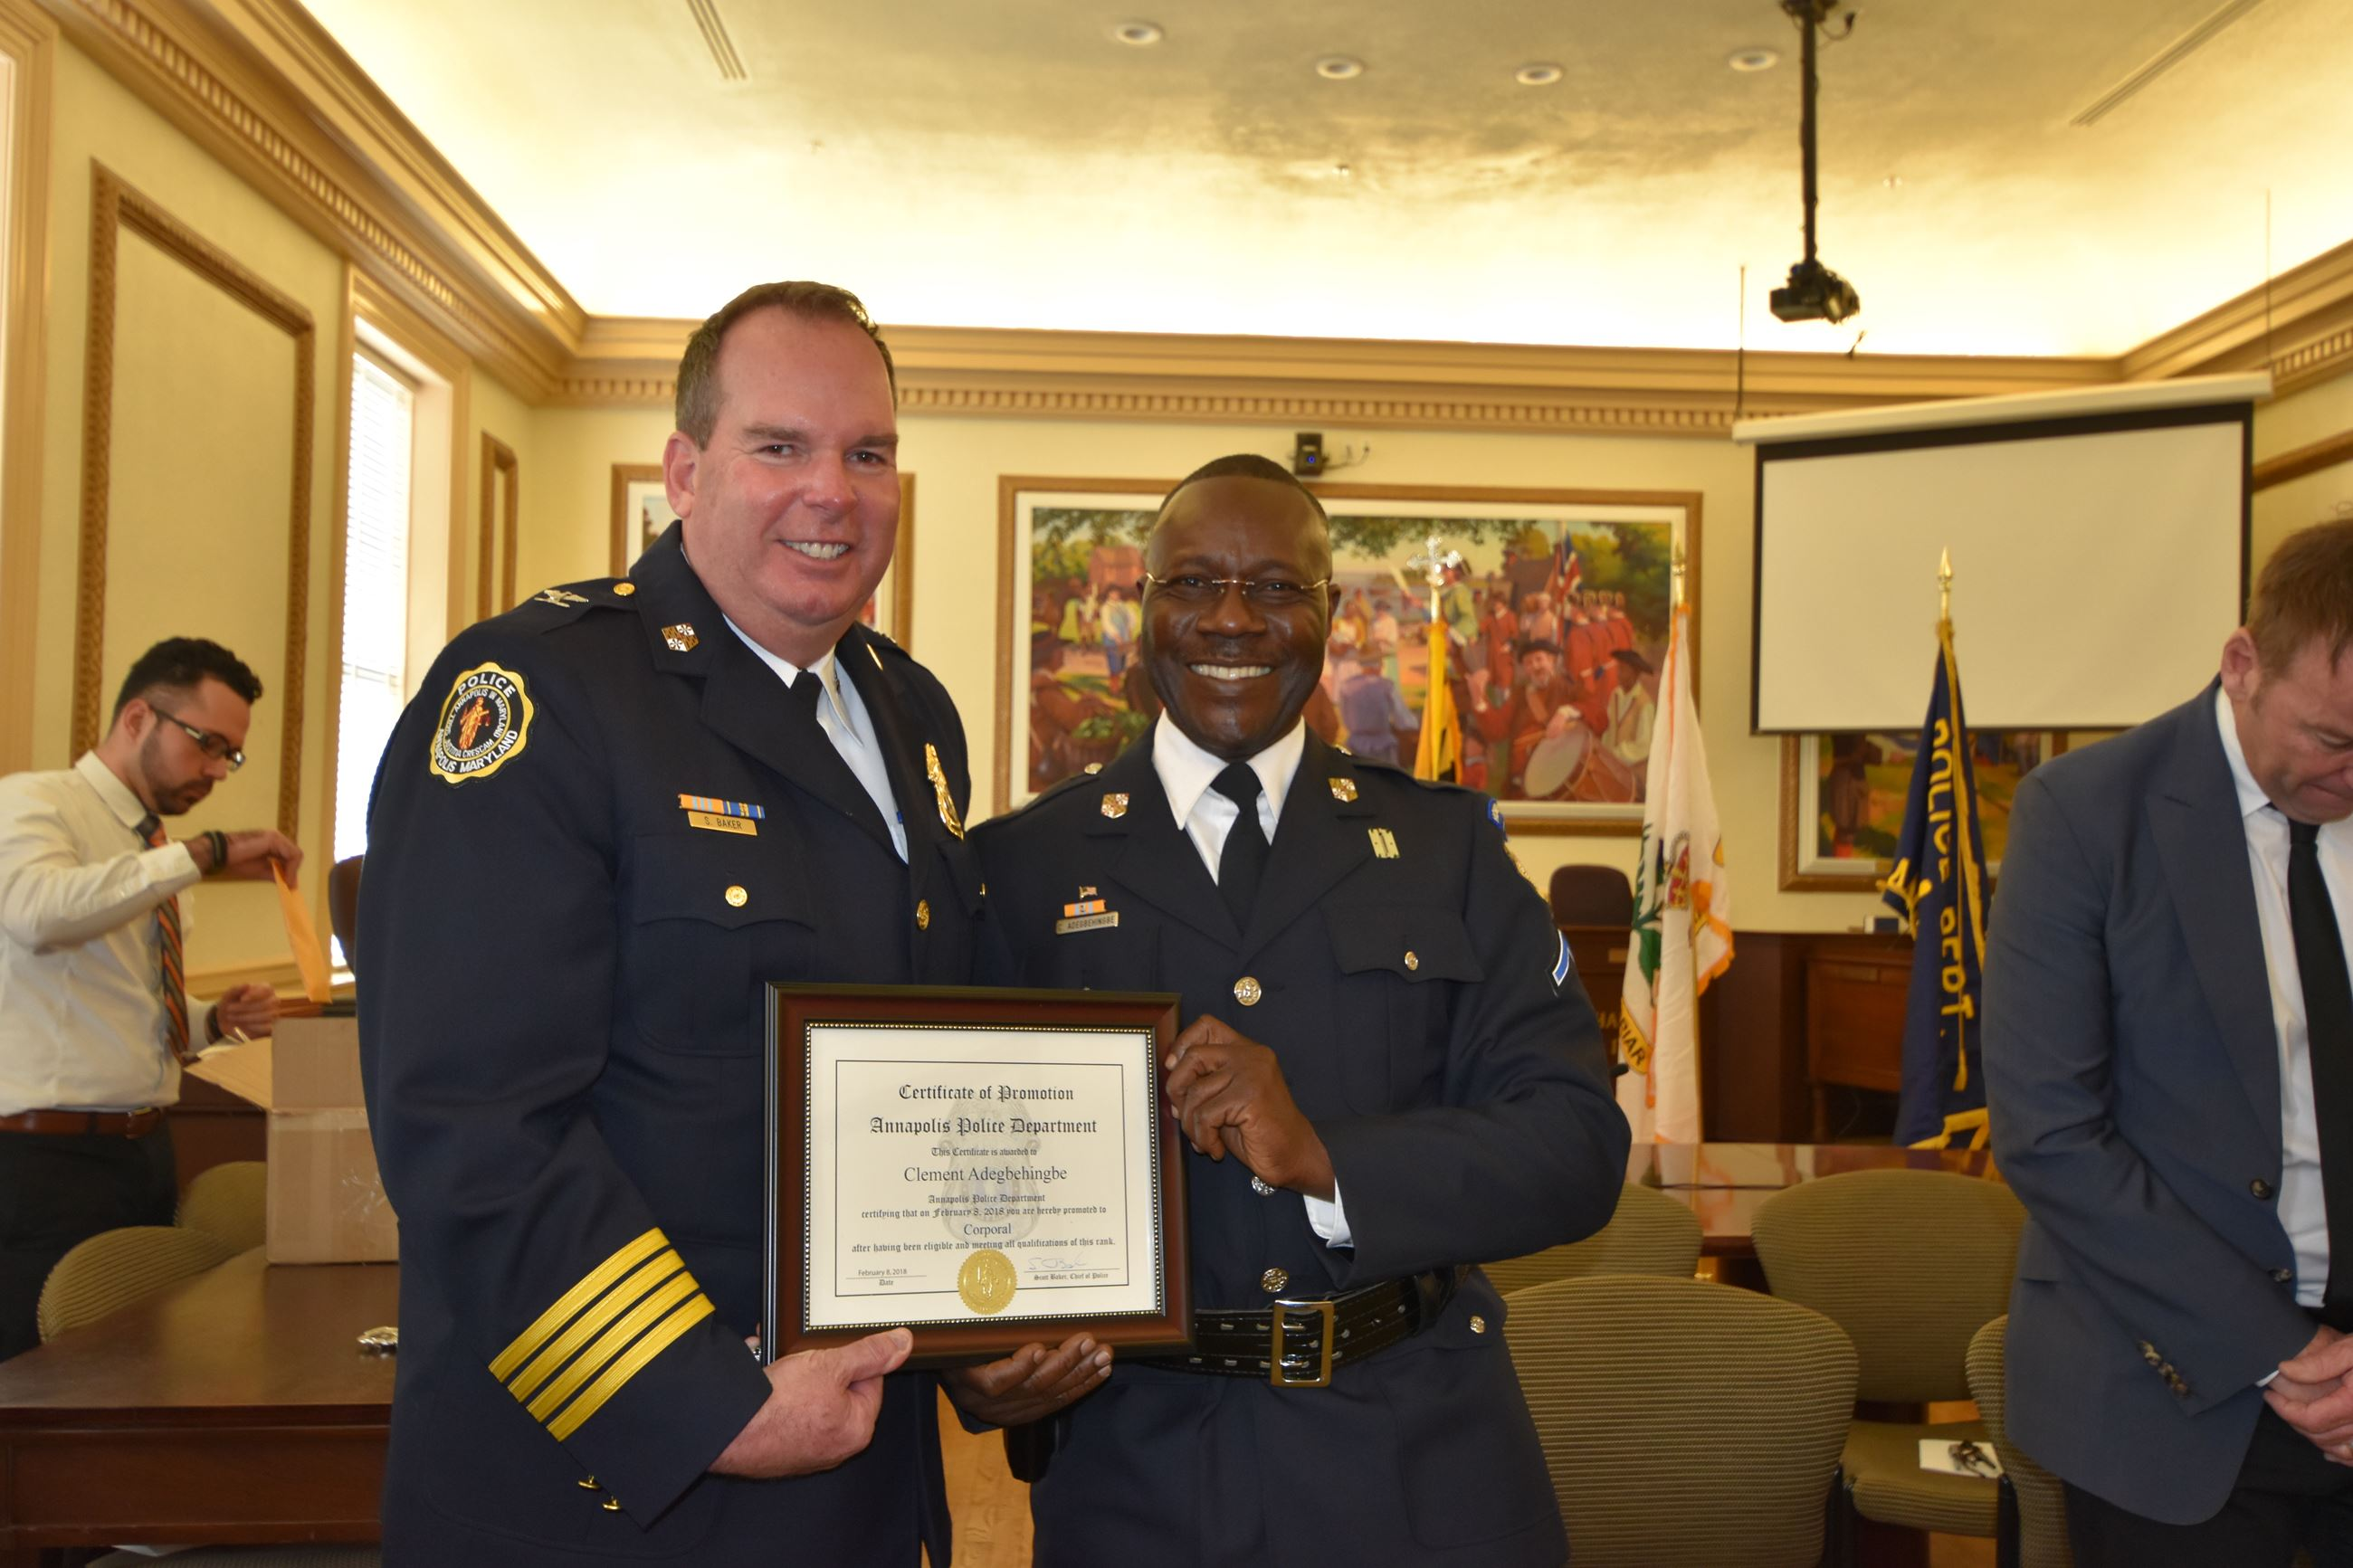 Officer Awards & Promotions | Annapolis, MD